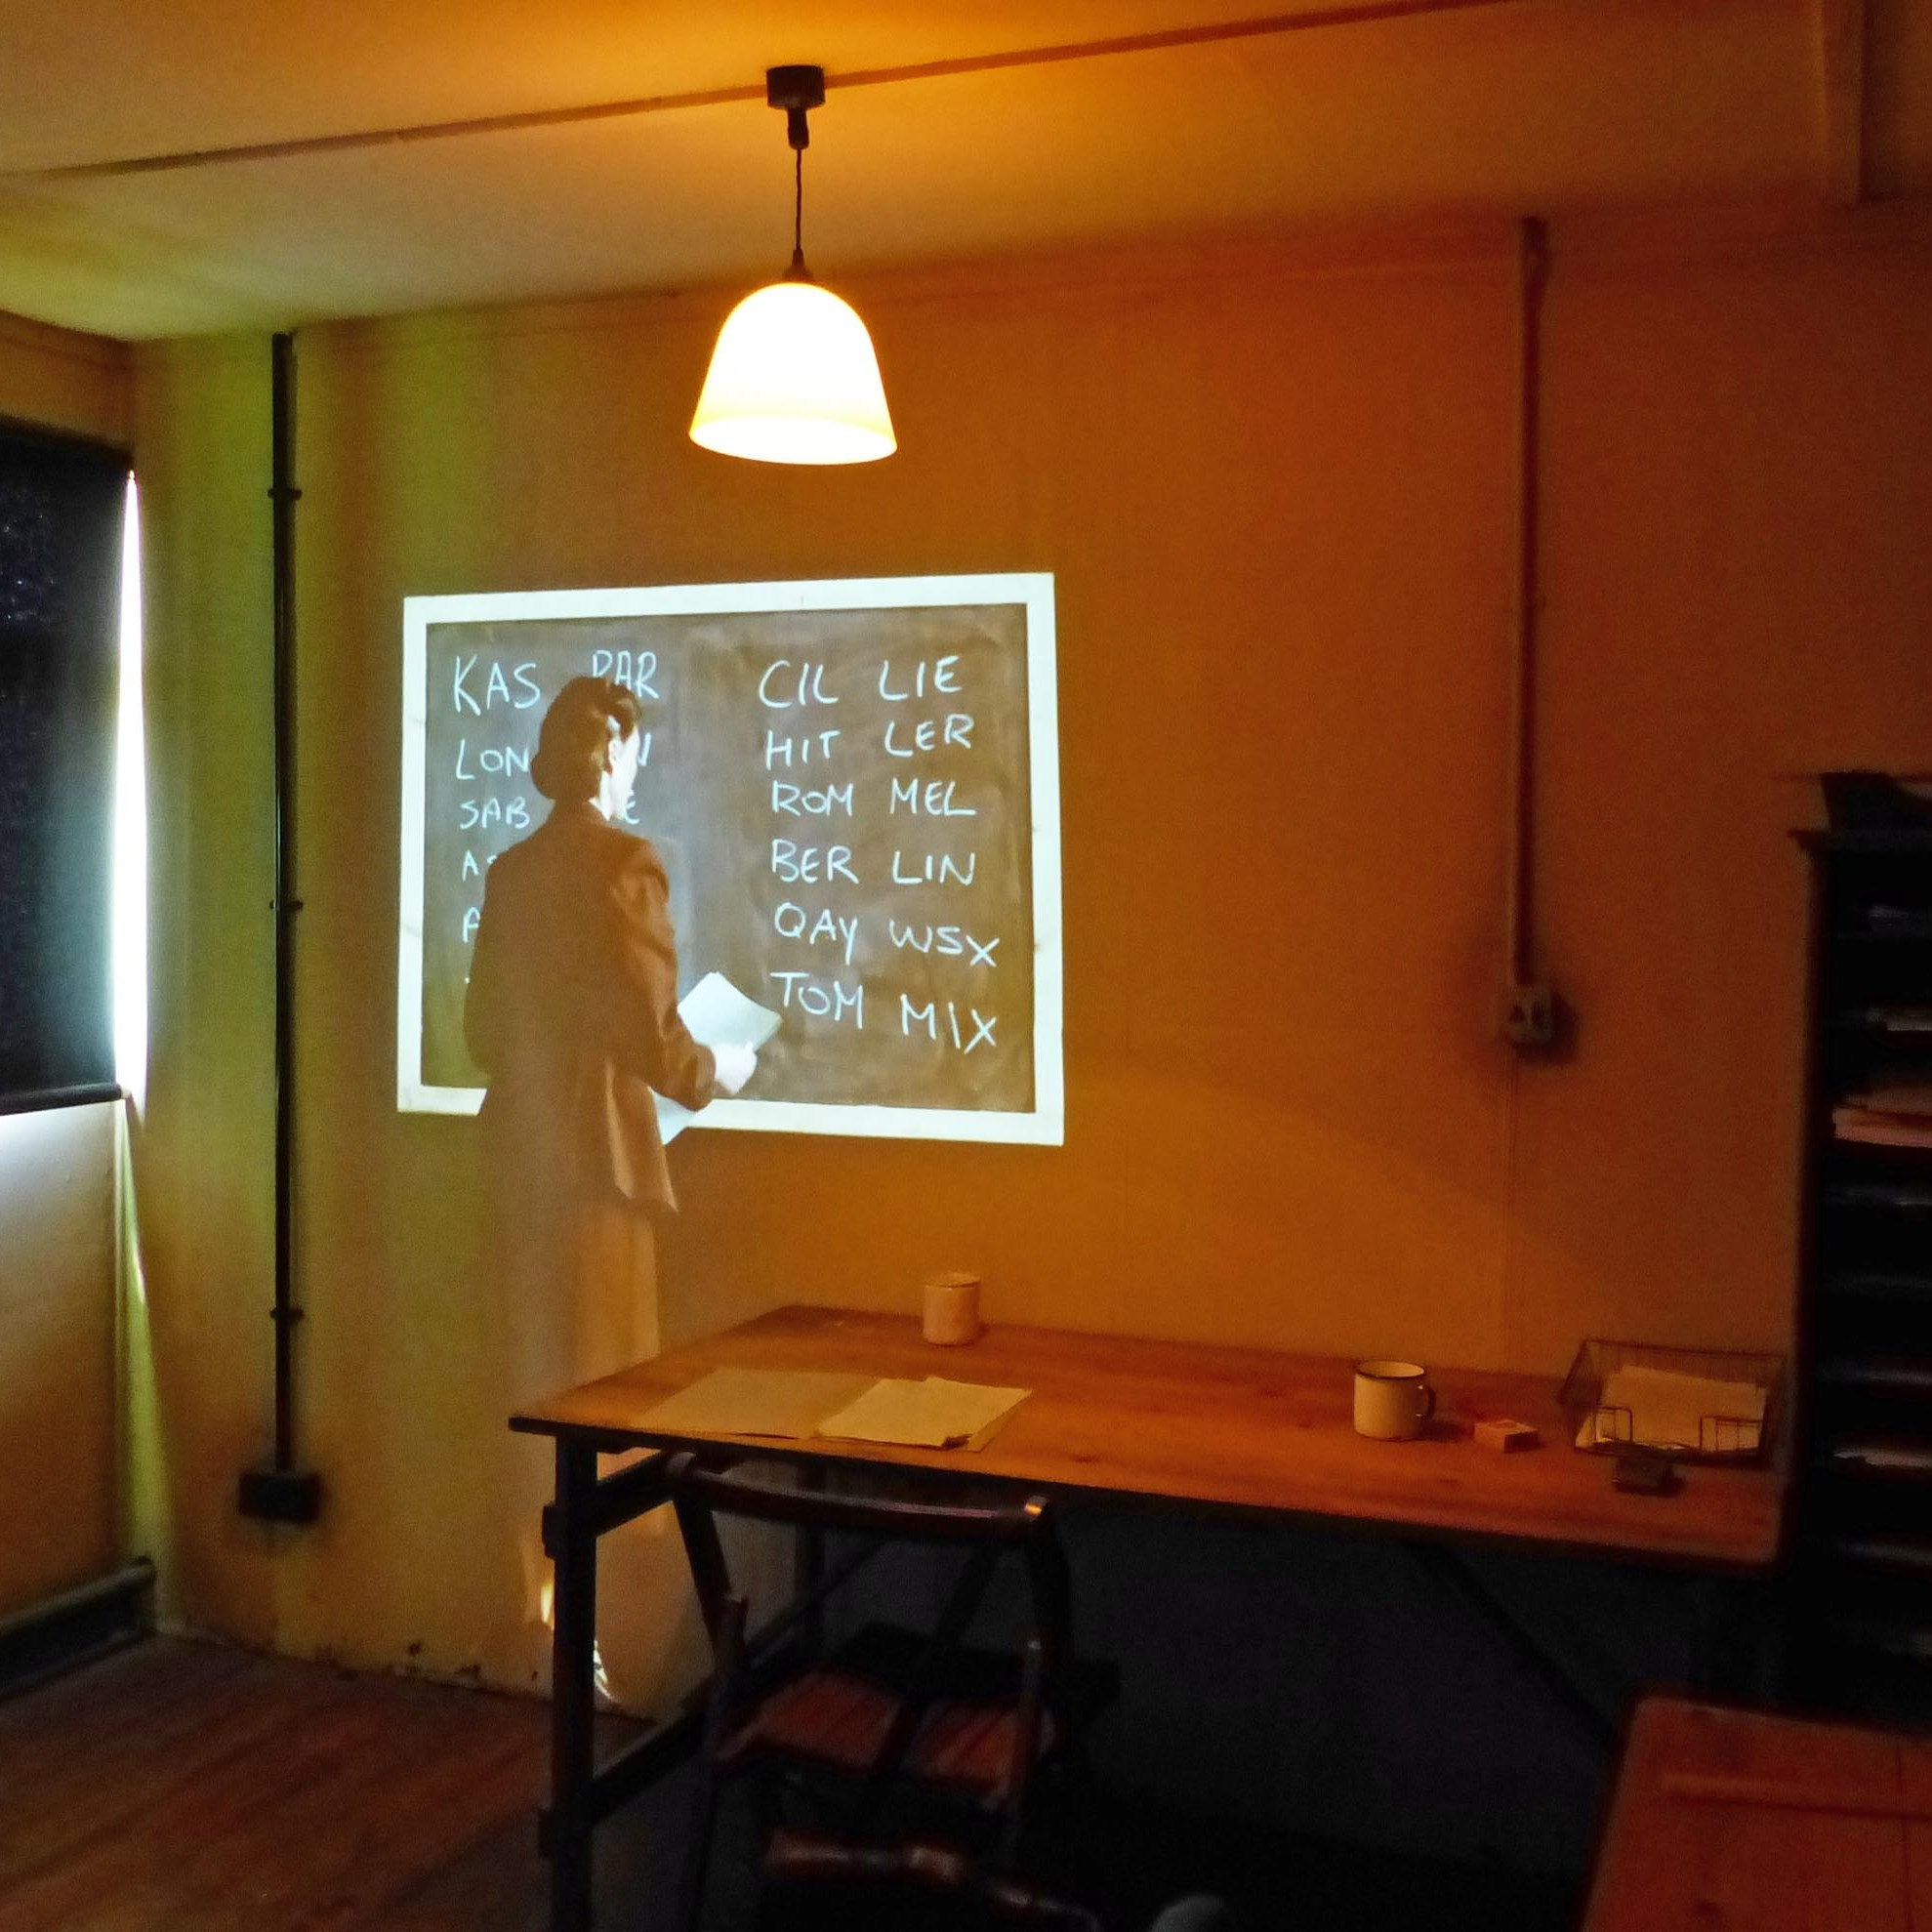 Projection on a wall of a lady writing on blackboard